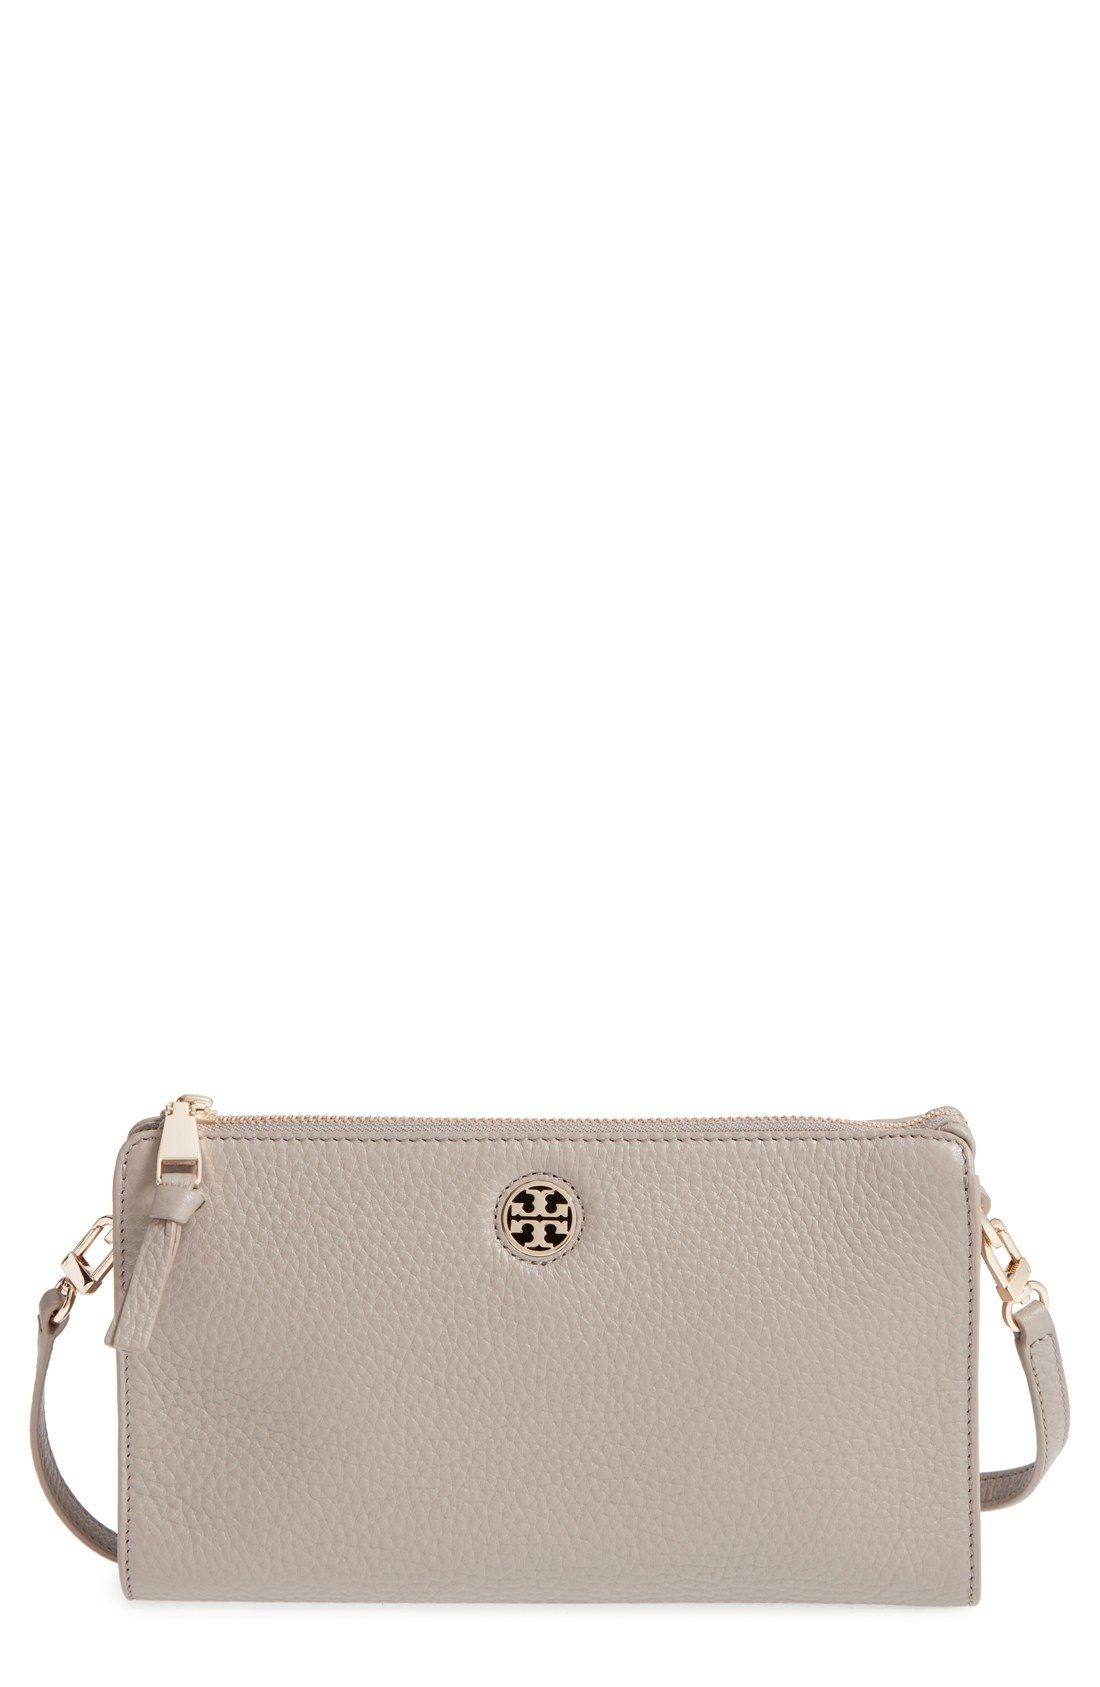 c45bcdf1c07 Tory Burch  Robinson  Pebbled Leather Crossbody Wallet available at   Nordstrom